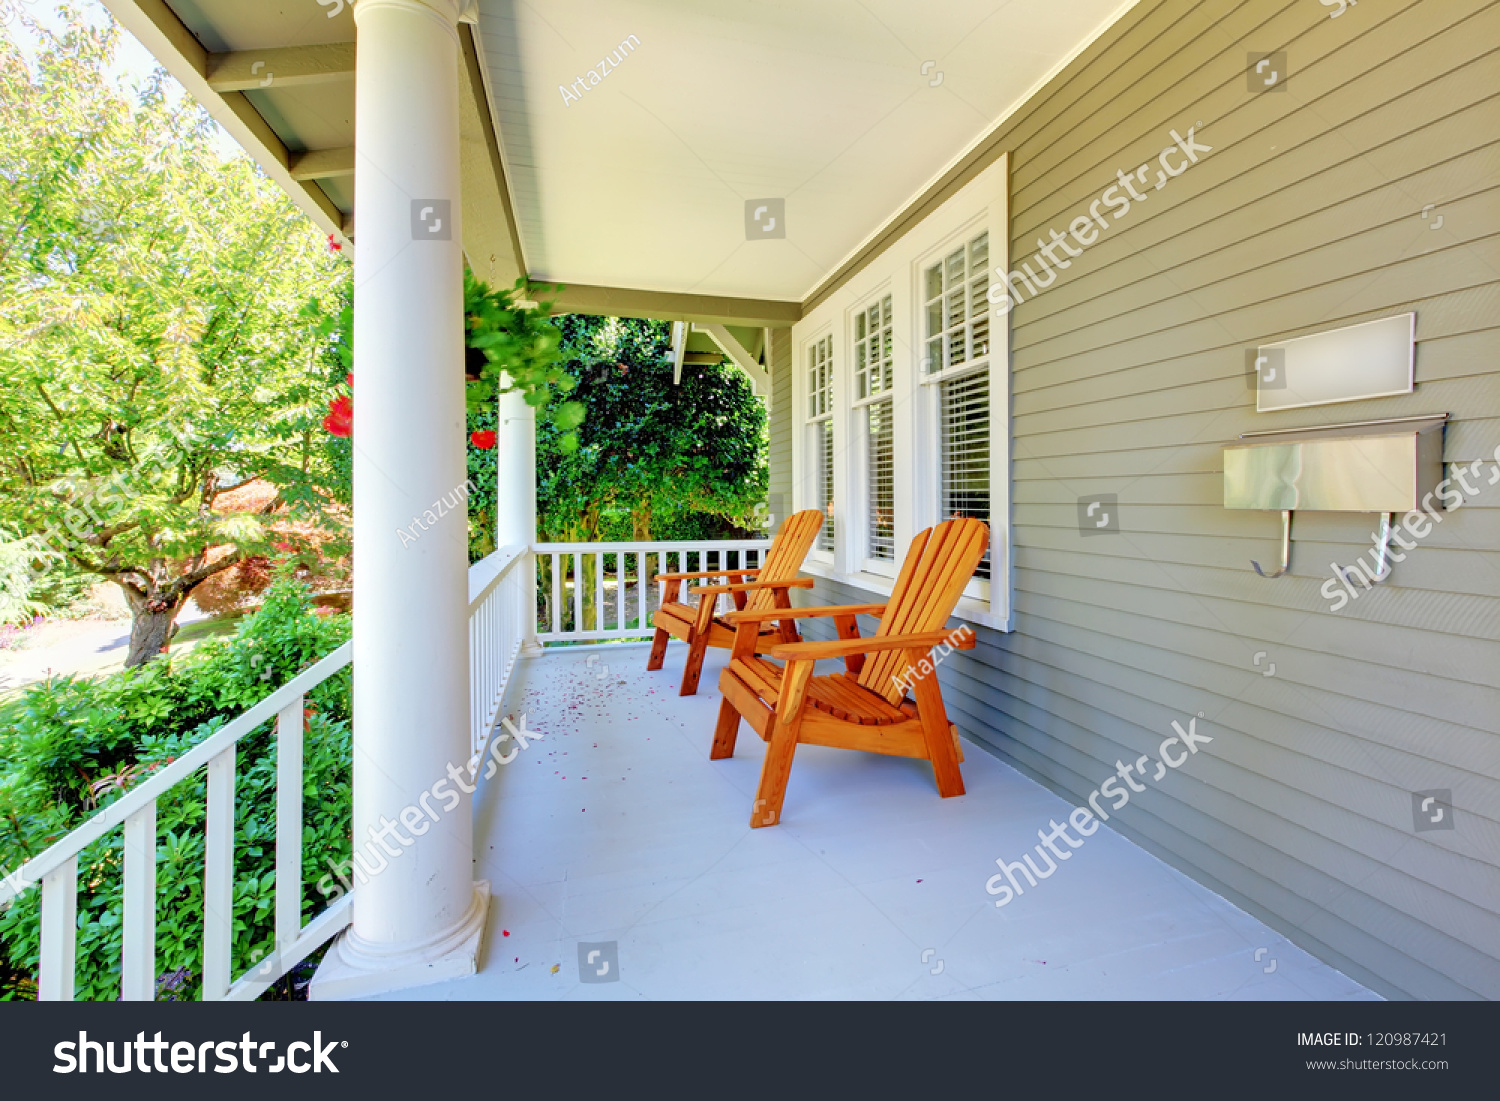 Craftsman style porch columns - Front Porch With Chairs And Columns Of Old Craftsman Style Home